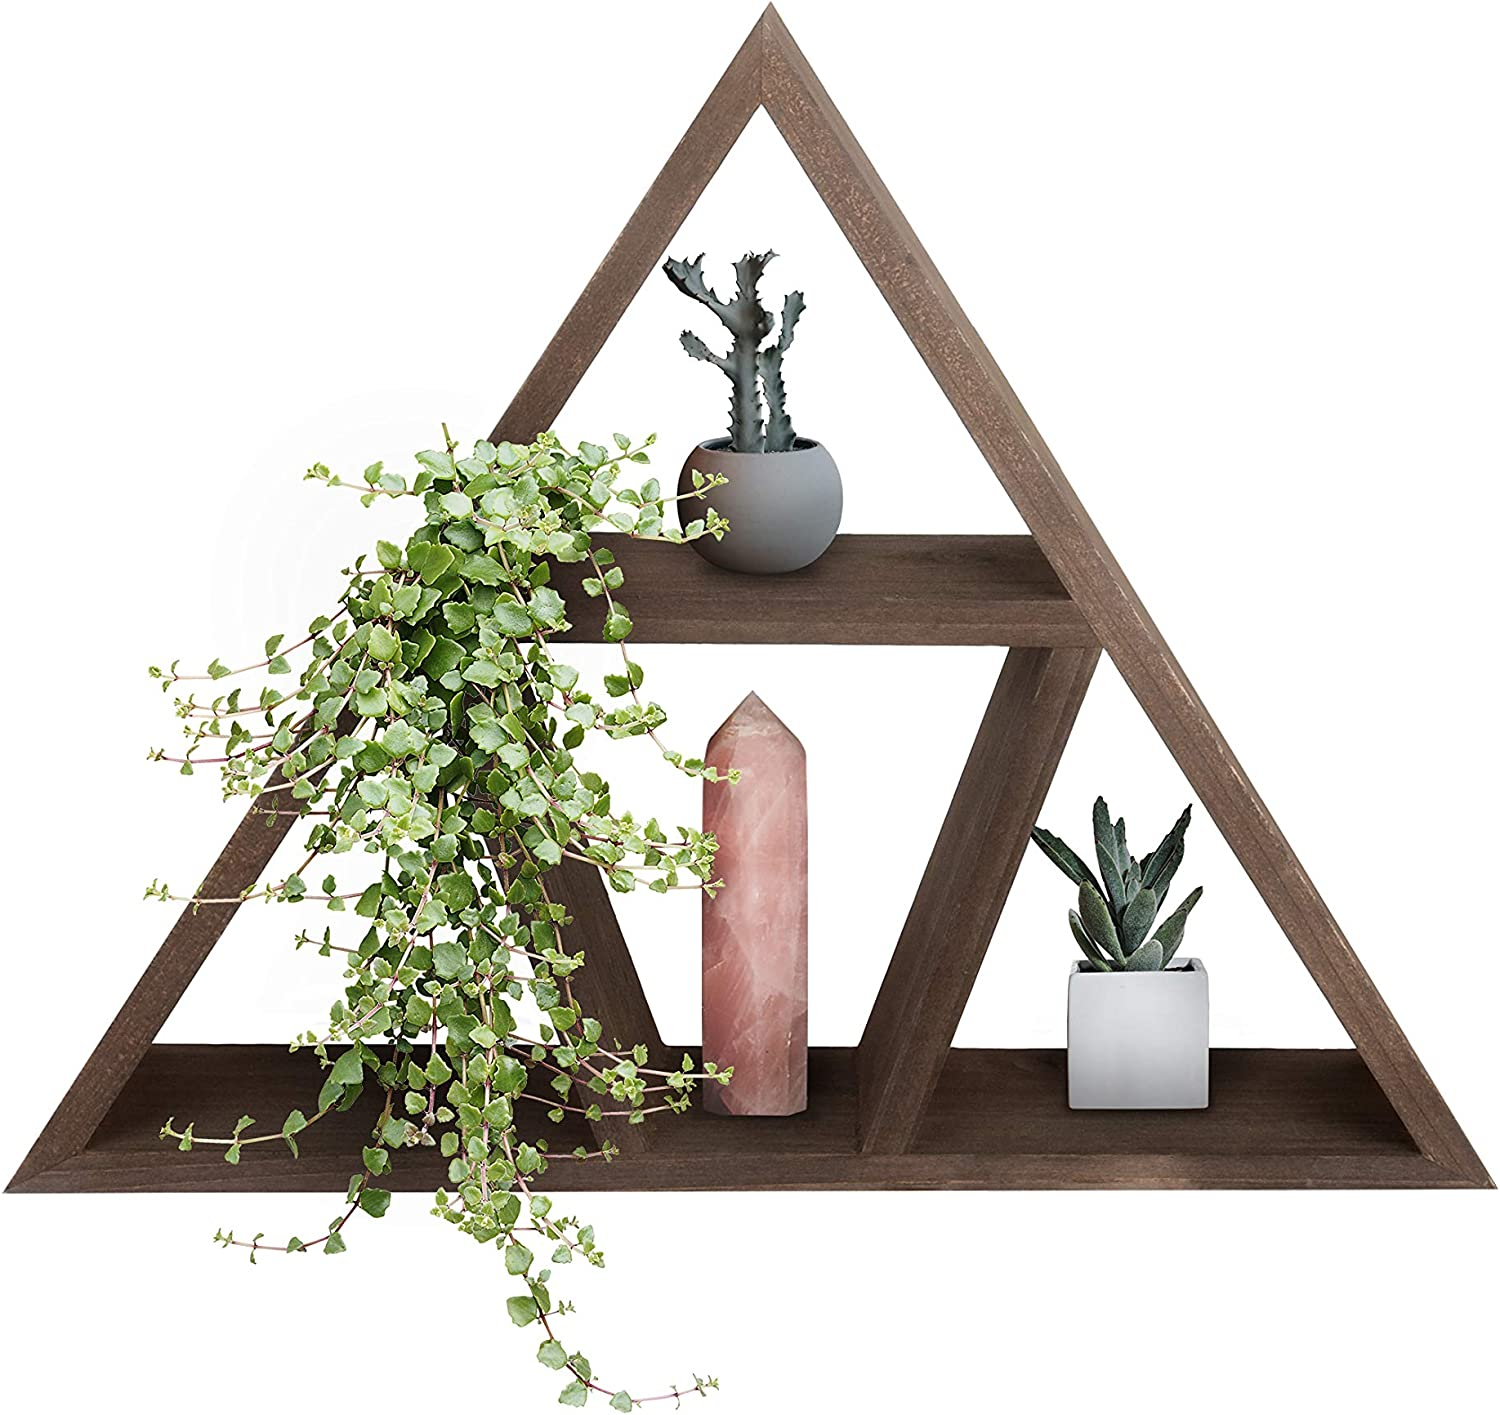 Wood Triangle Shelf for Crystal Décor. Wall Hanging Geometric Display Shelving for Oils, Plants, Crystals, Stones and Geodes. Pyramid Floating Shelves and Rustic Holders for Spiritual Therapy